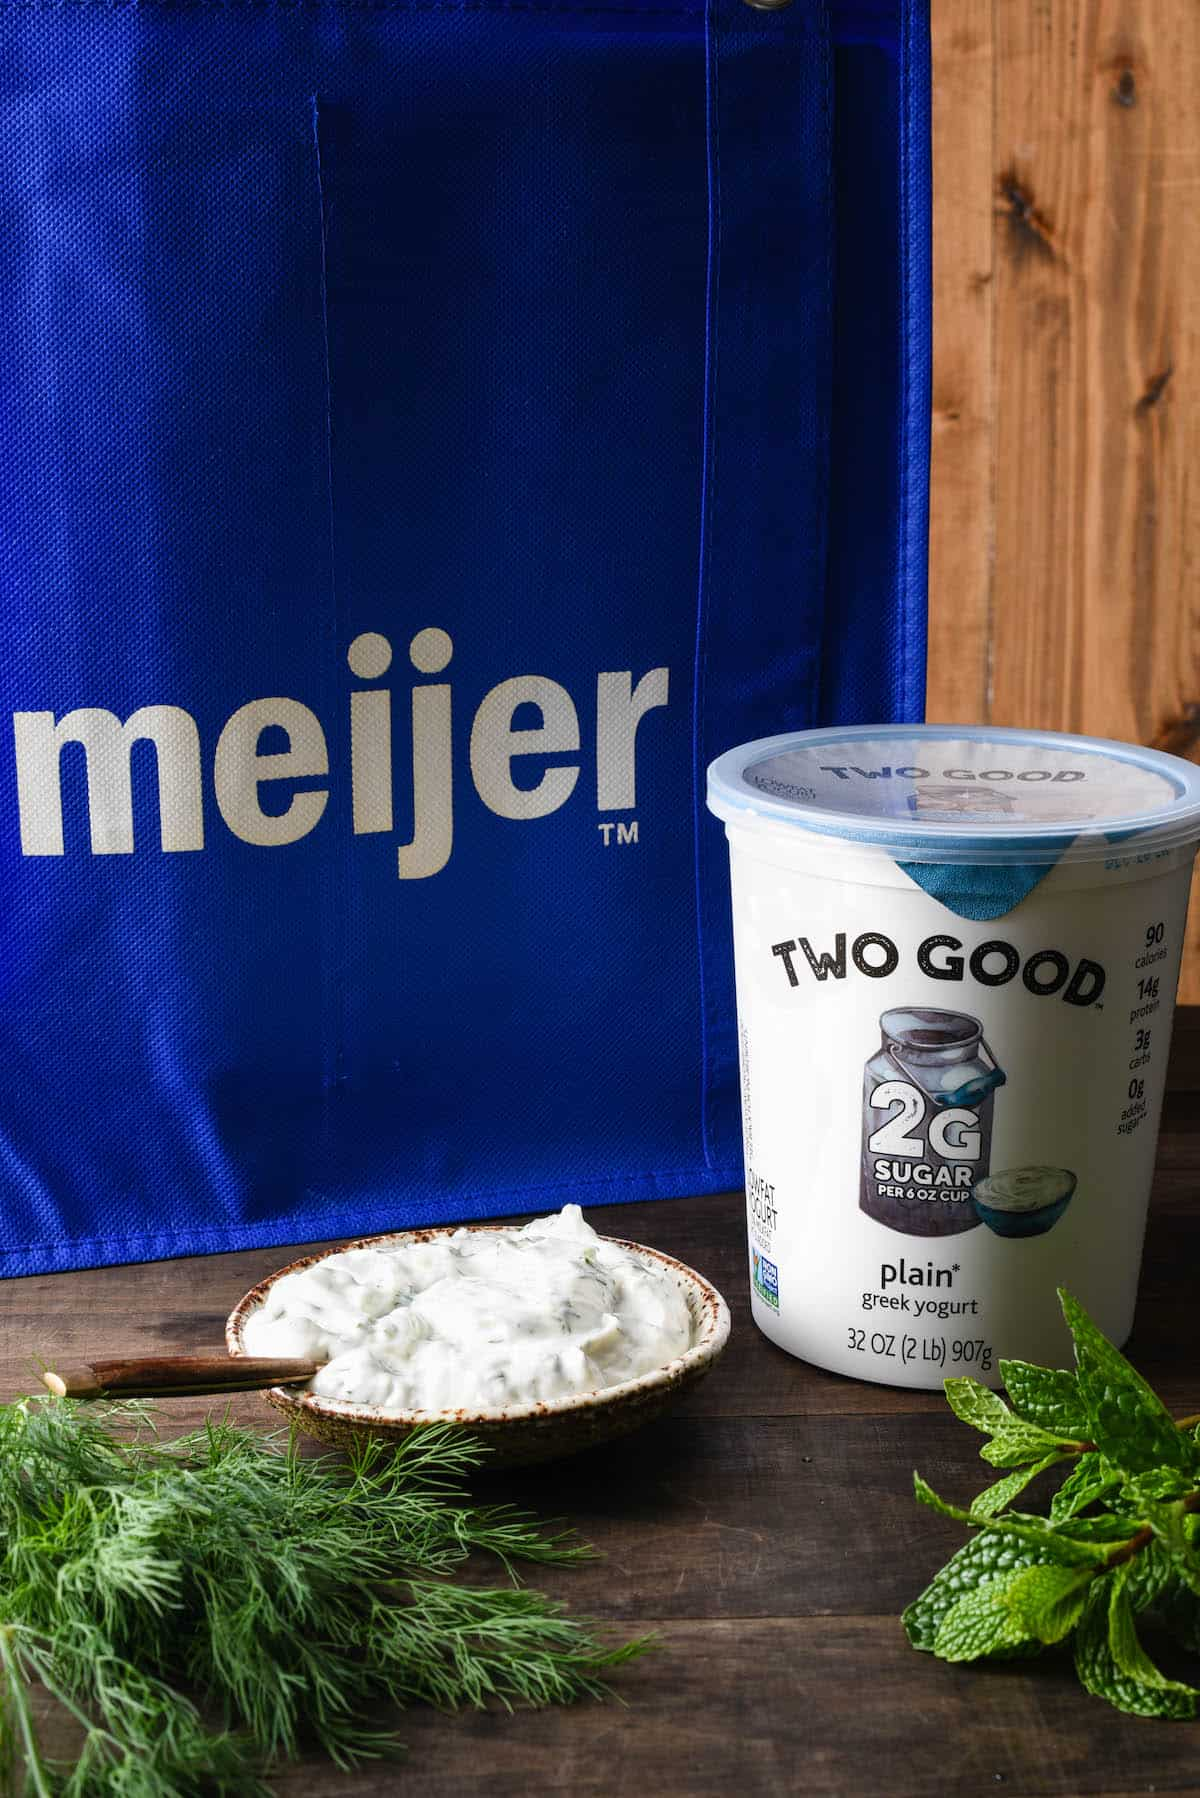 Container of Two Good Greek yogurt, bowl of yogurt sauce, mint and dill, with blue reusable Meijer bag in background.